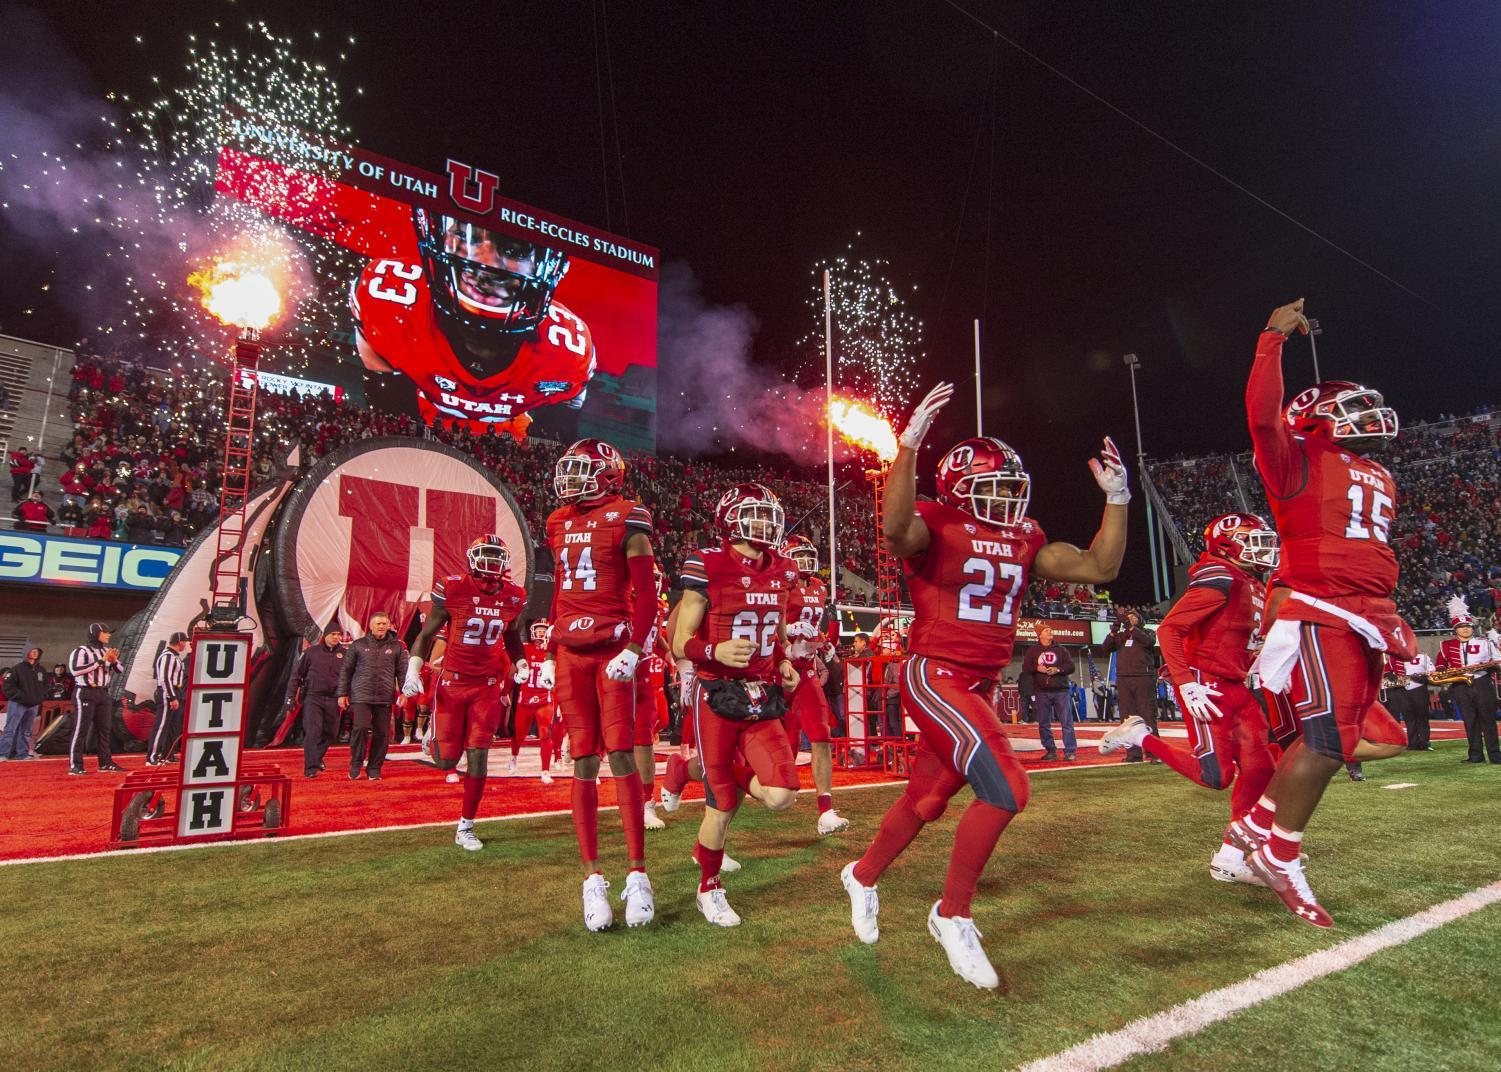 The University of Utah runs onto the field during an NCAA Football game vs. the Brigham Young University Cougars at Rice Eccles Stadium in Salt Lake City, Utah on Saturday, Nov. 24, 2018. (Photo by Kiffer Creveling | The Daily Utah Chronicle)